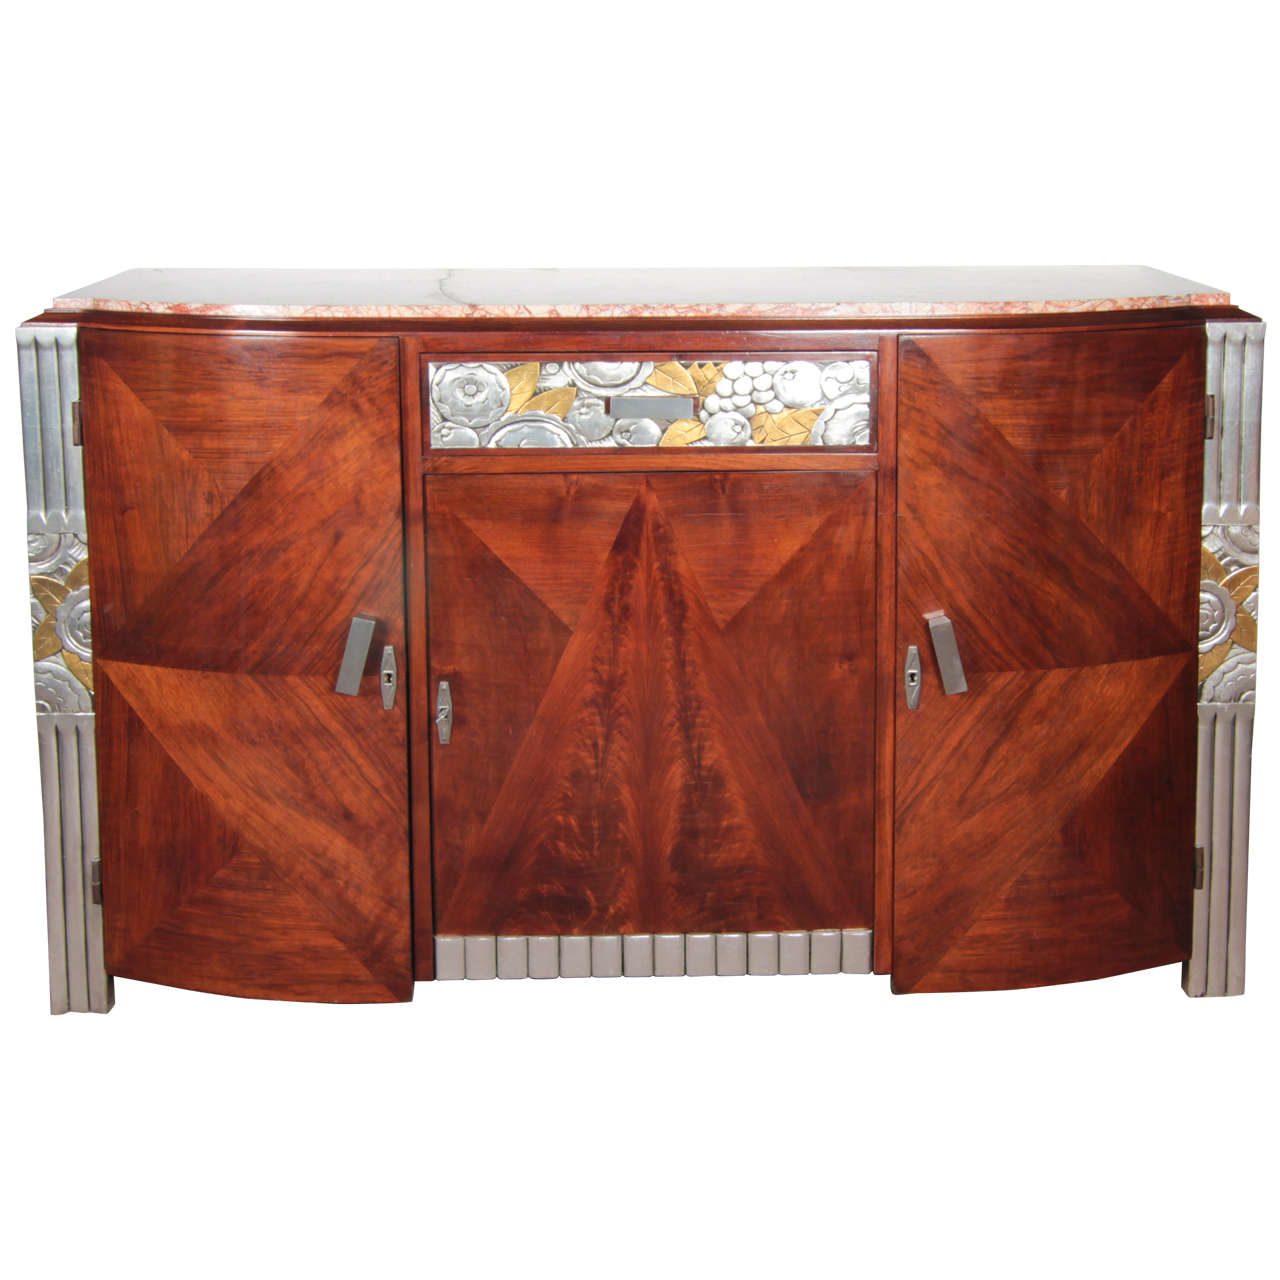 French Art Deco Gold and Silver Leaf, Hand-Carved Parquetry Inlaid Cabinet